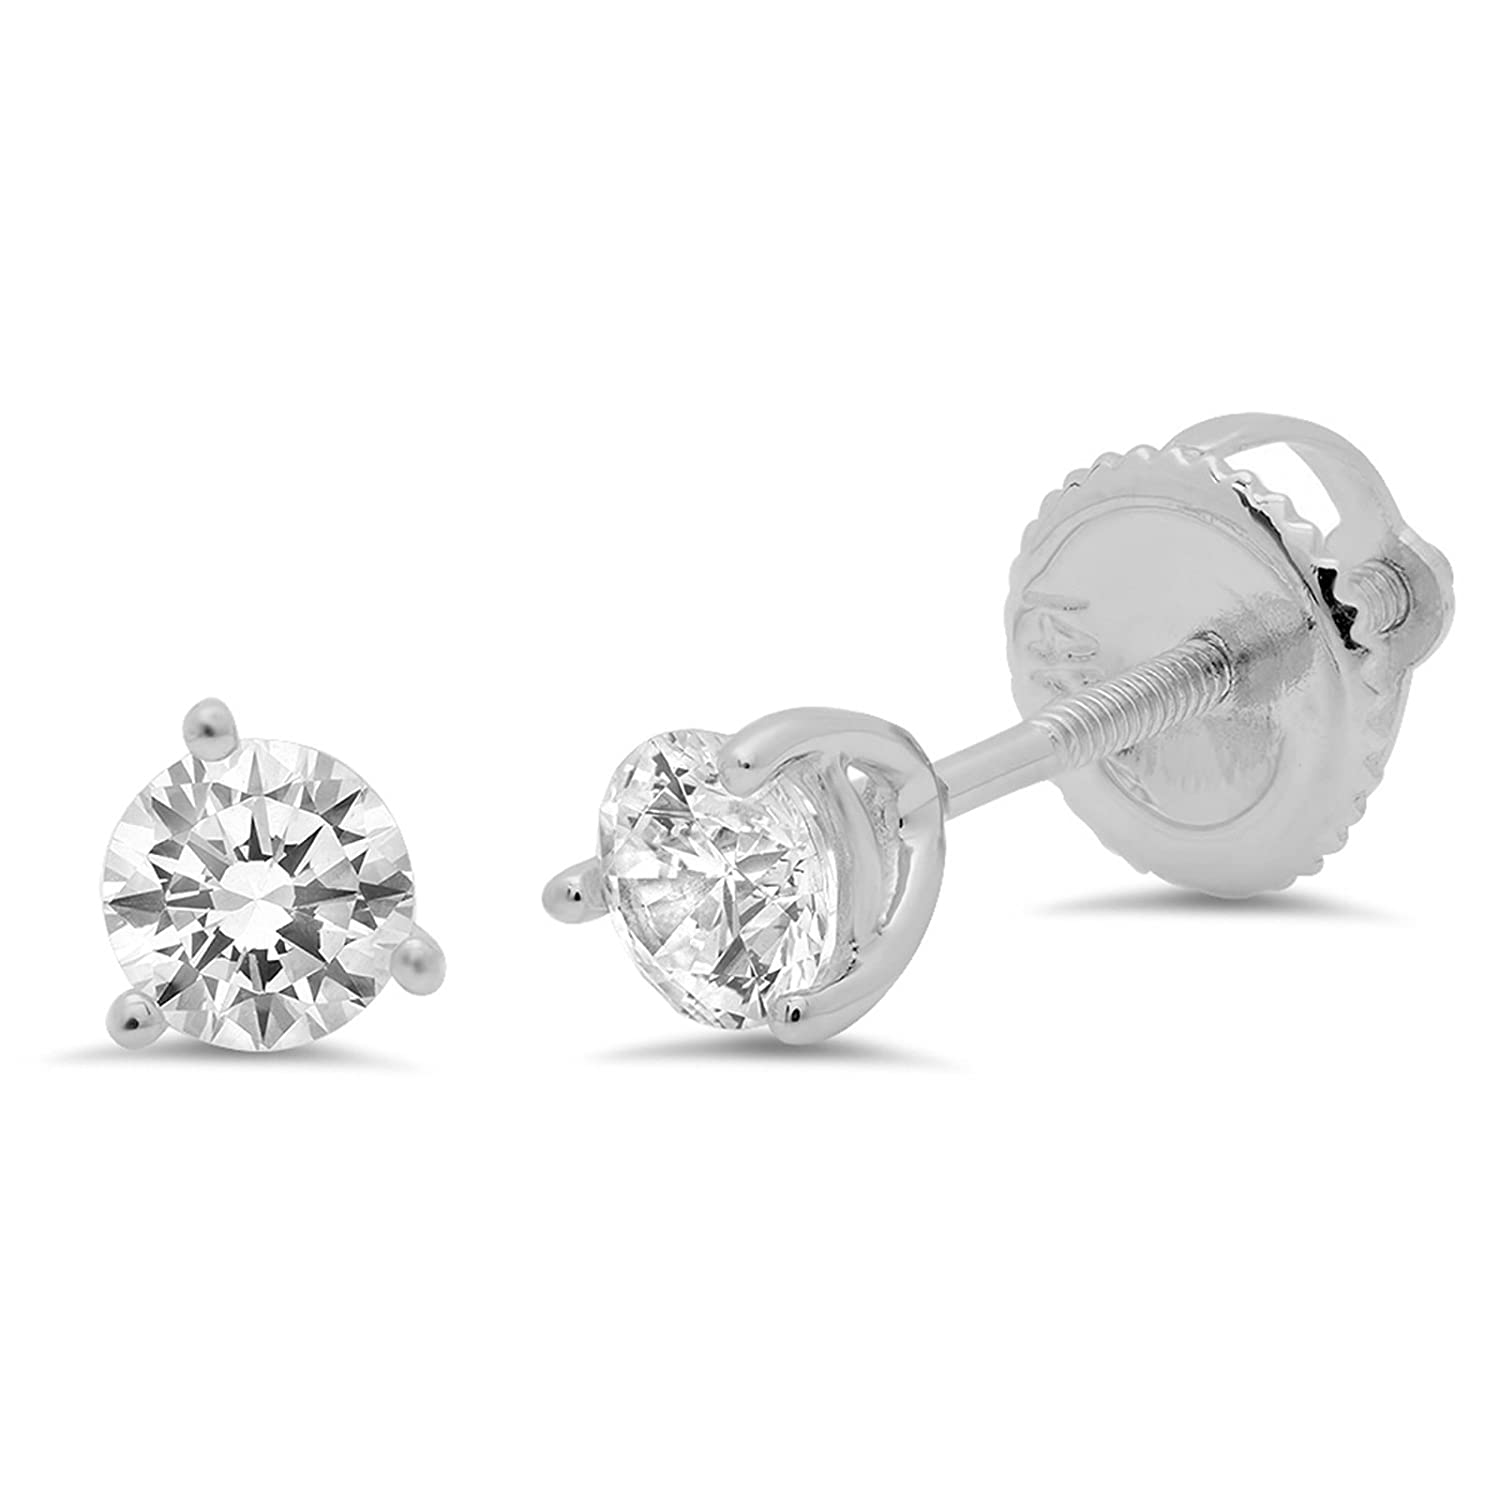 9e15bad9b71 Amazon.com  Clara Pucci 0.40 CT Round Cut Solitaire Martini Style Stud  Earrings in 14k White Gold Screw Back  Jewelry